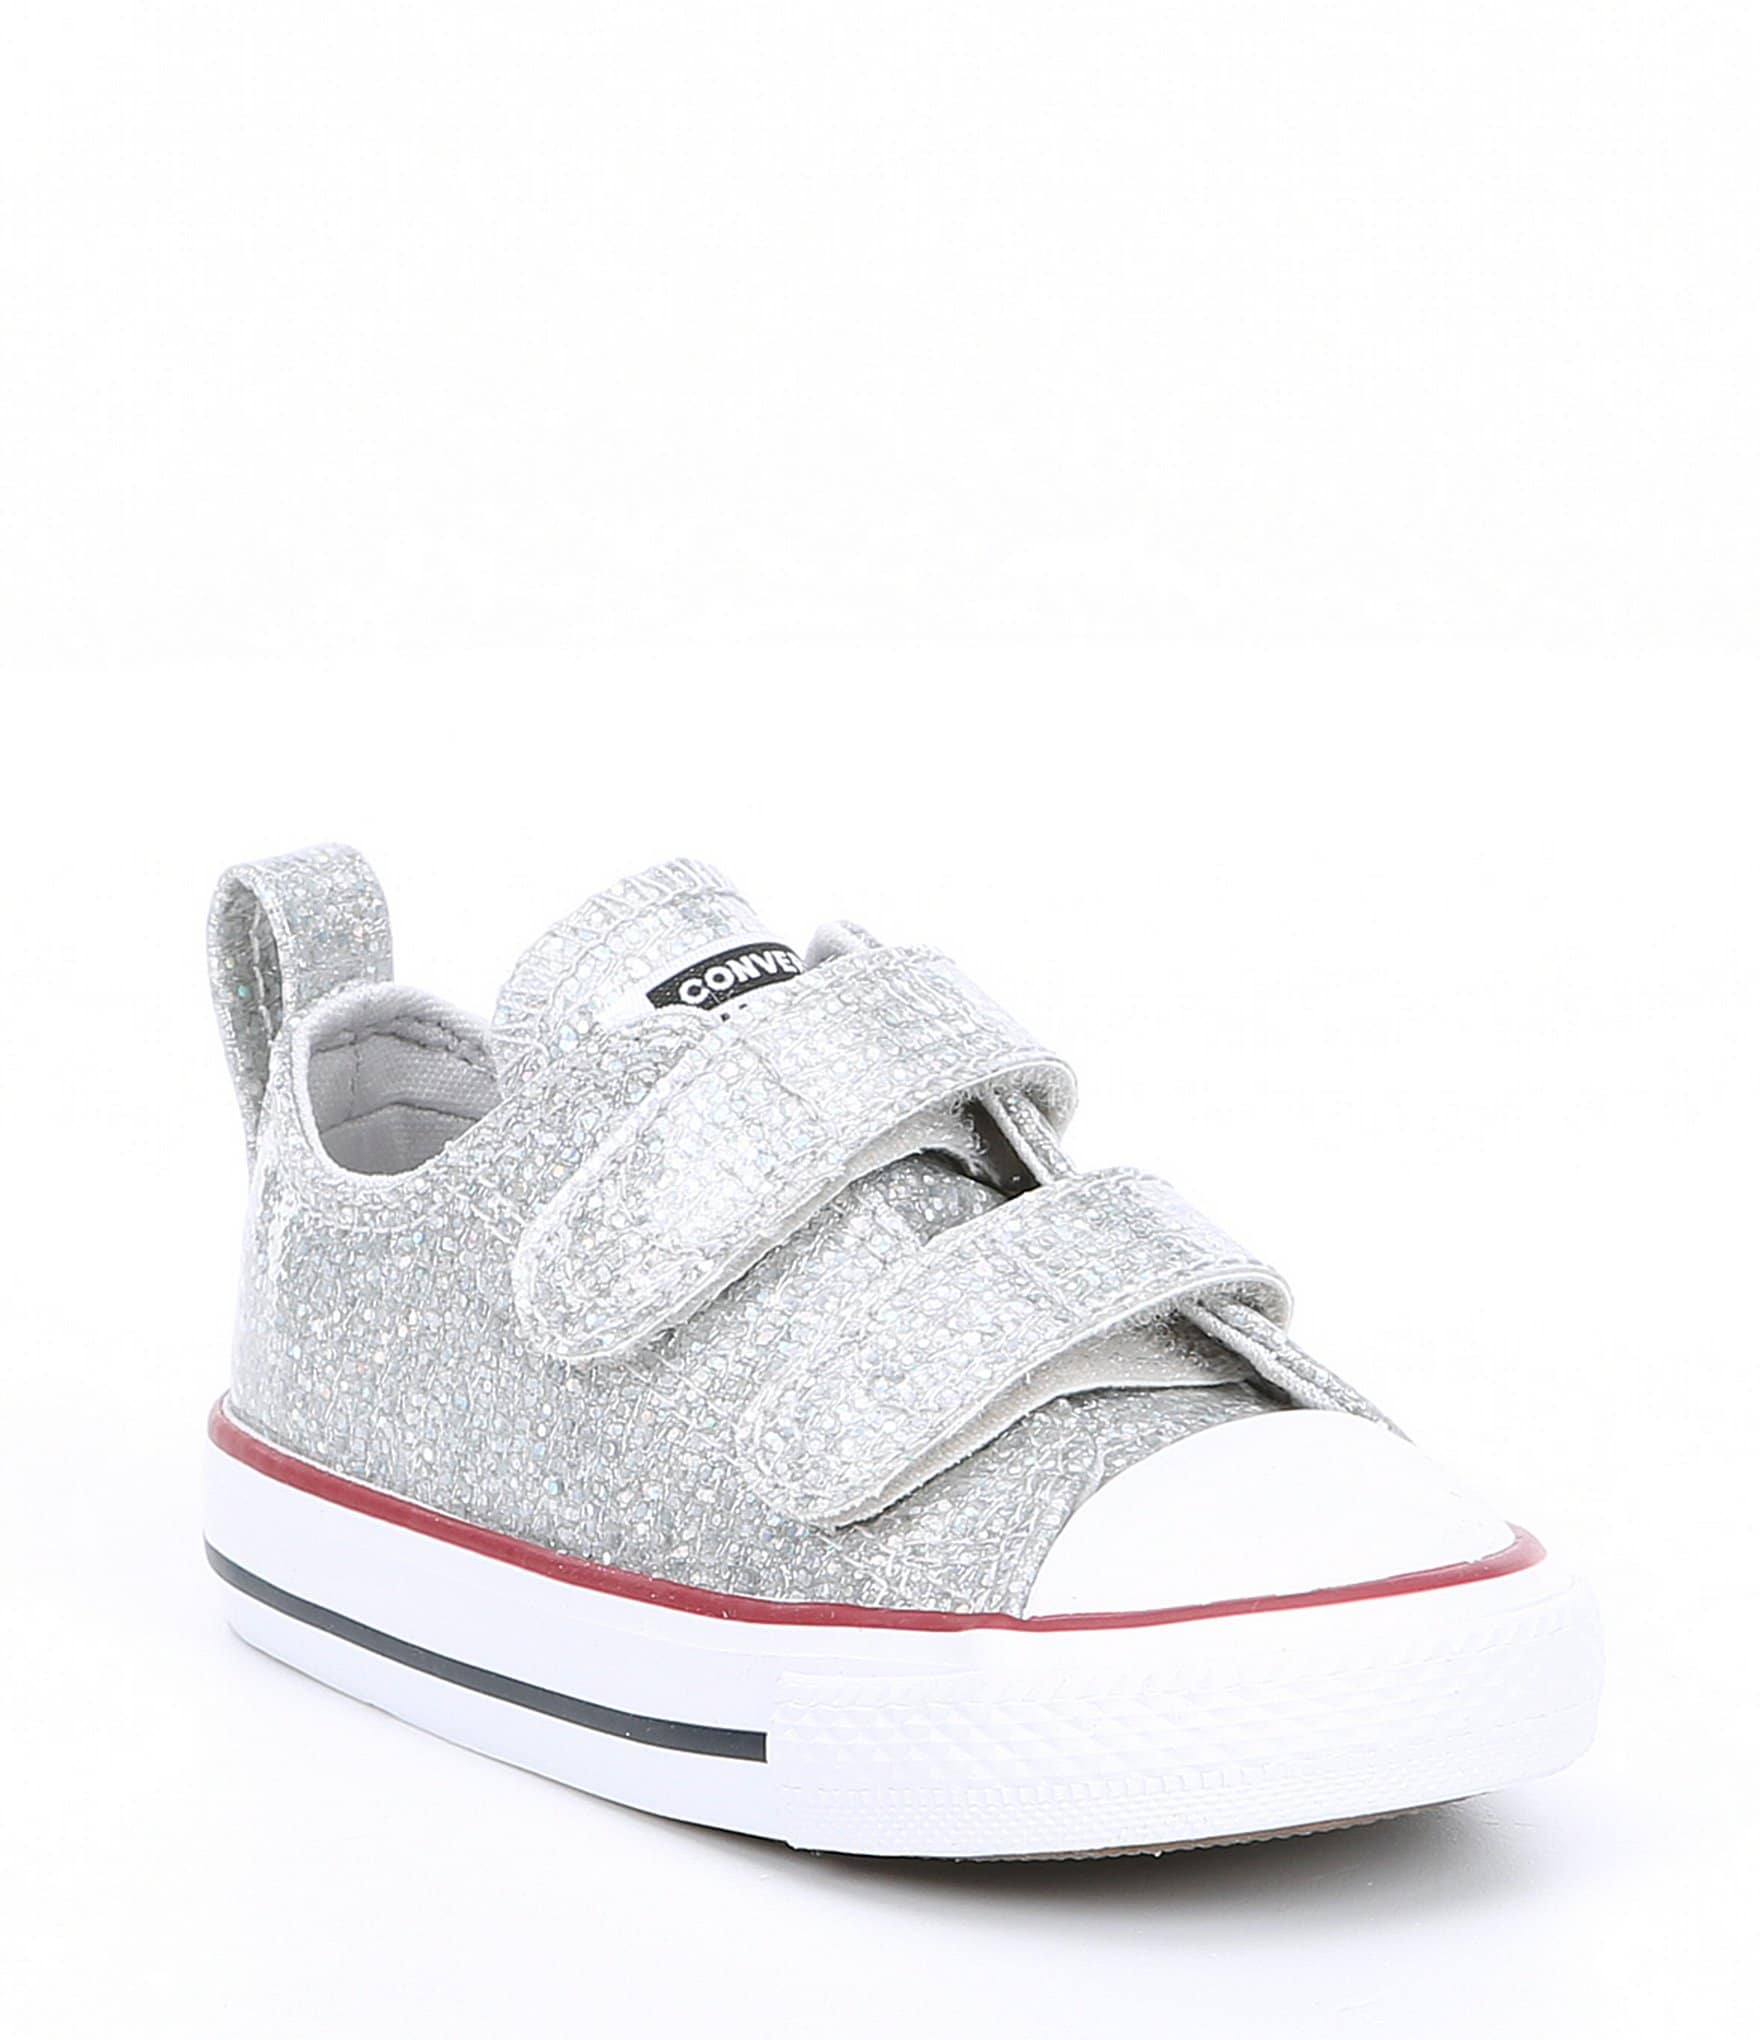 Converse Girls' Chuck Taylor All Star Oxford Sneaker